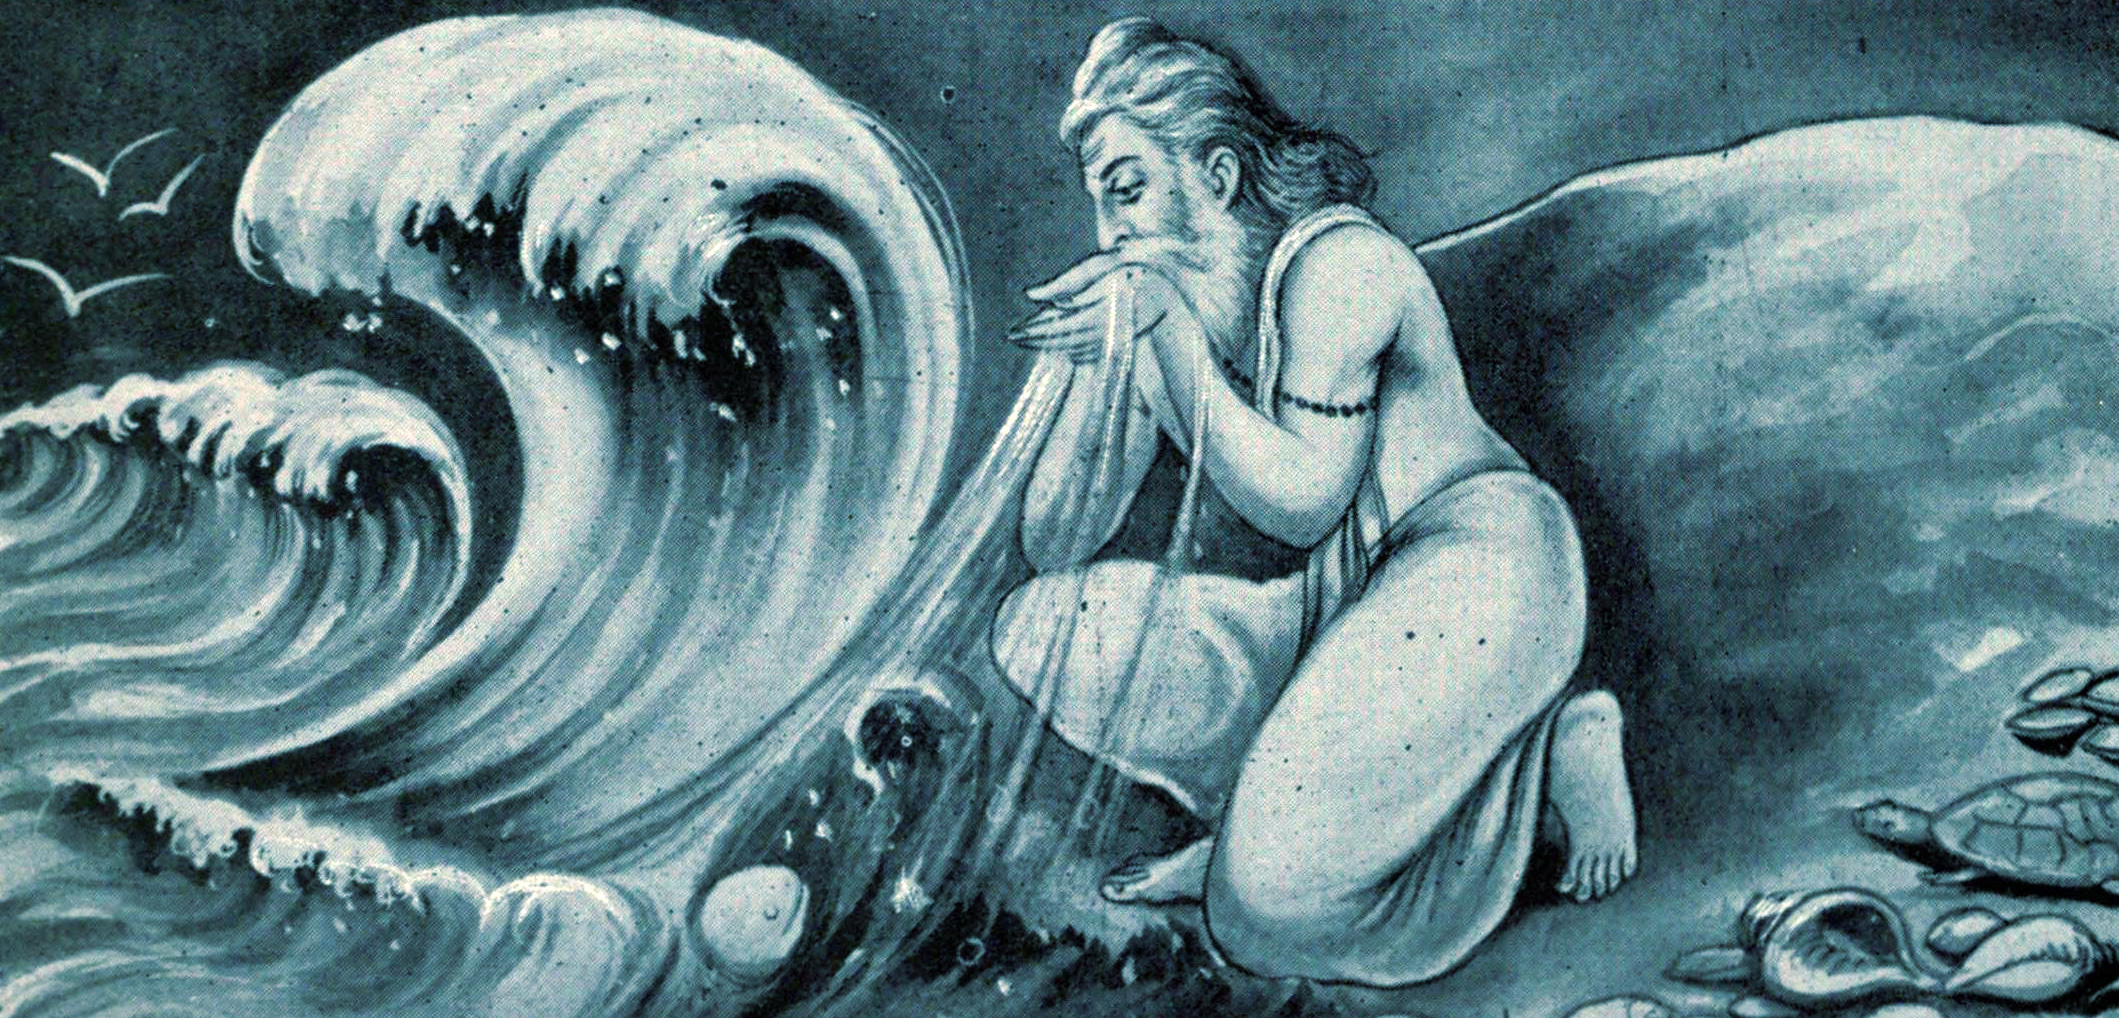 In Hindu mythology, the powerful sage Agastya slurps up the sea and then spews or urinates it out, making it salty.